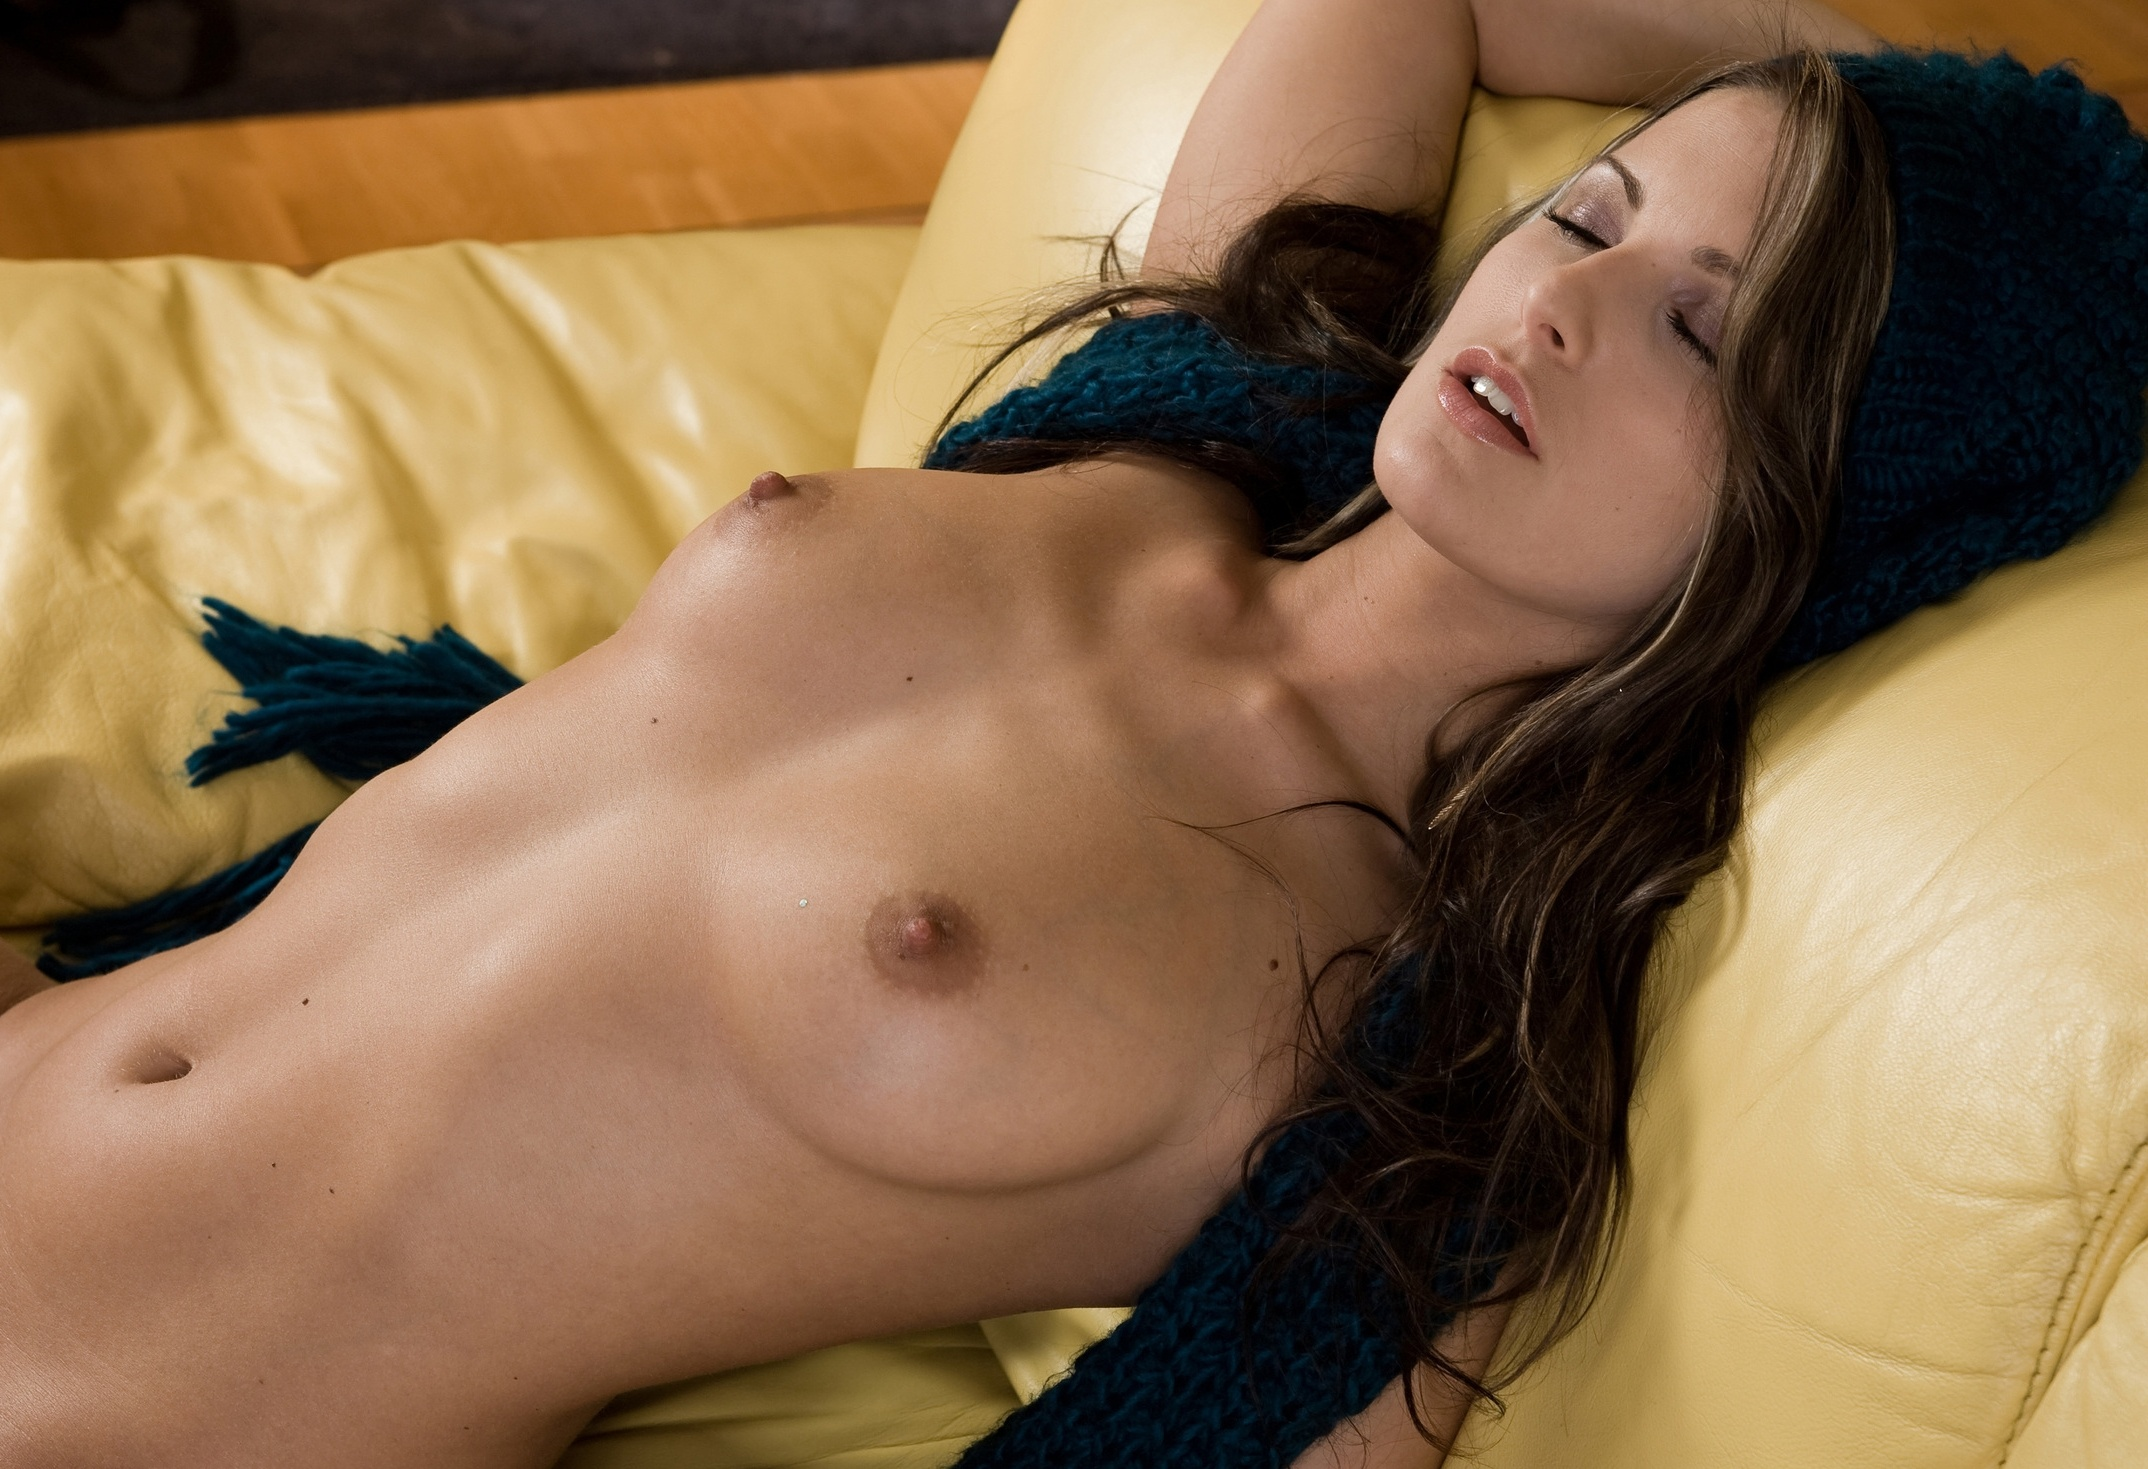 Wallpaper Nude, Tits, Brunette, Sleeping, Hot, Girl Desktop Wallpaper -5527